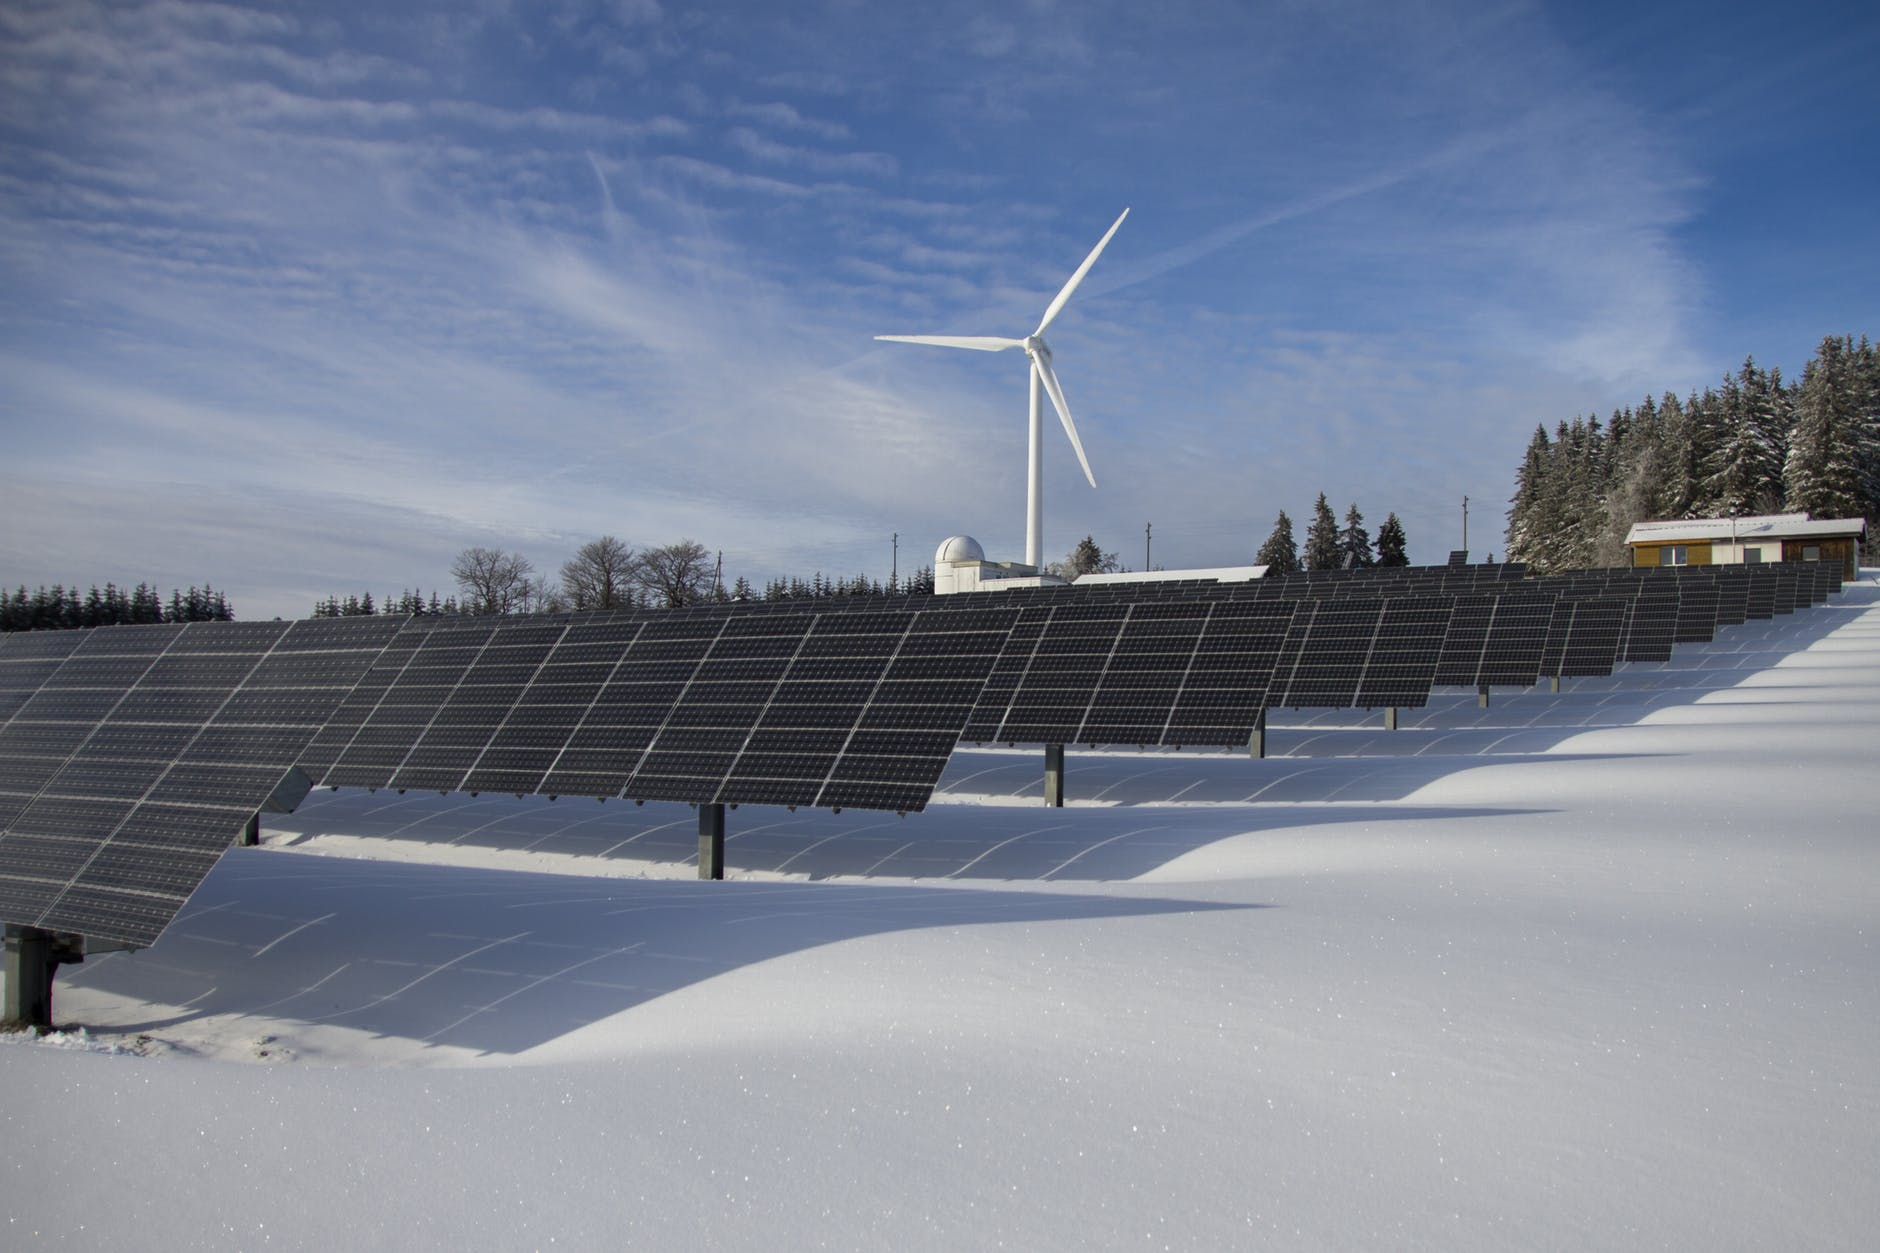 solar panels and a wind turbine in front of the snow